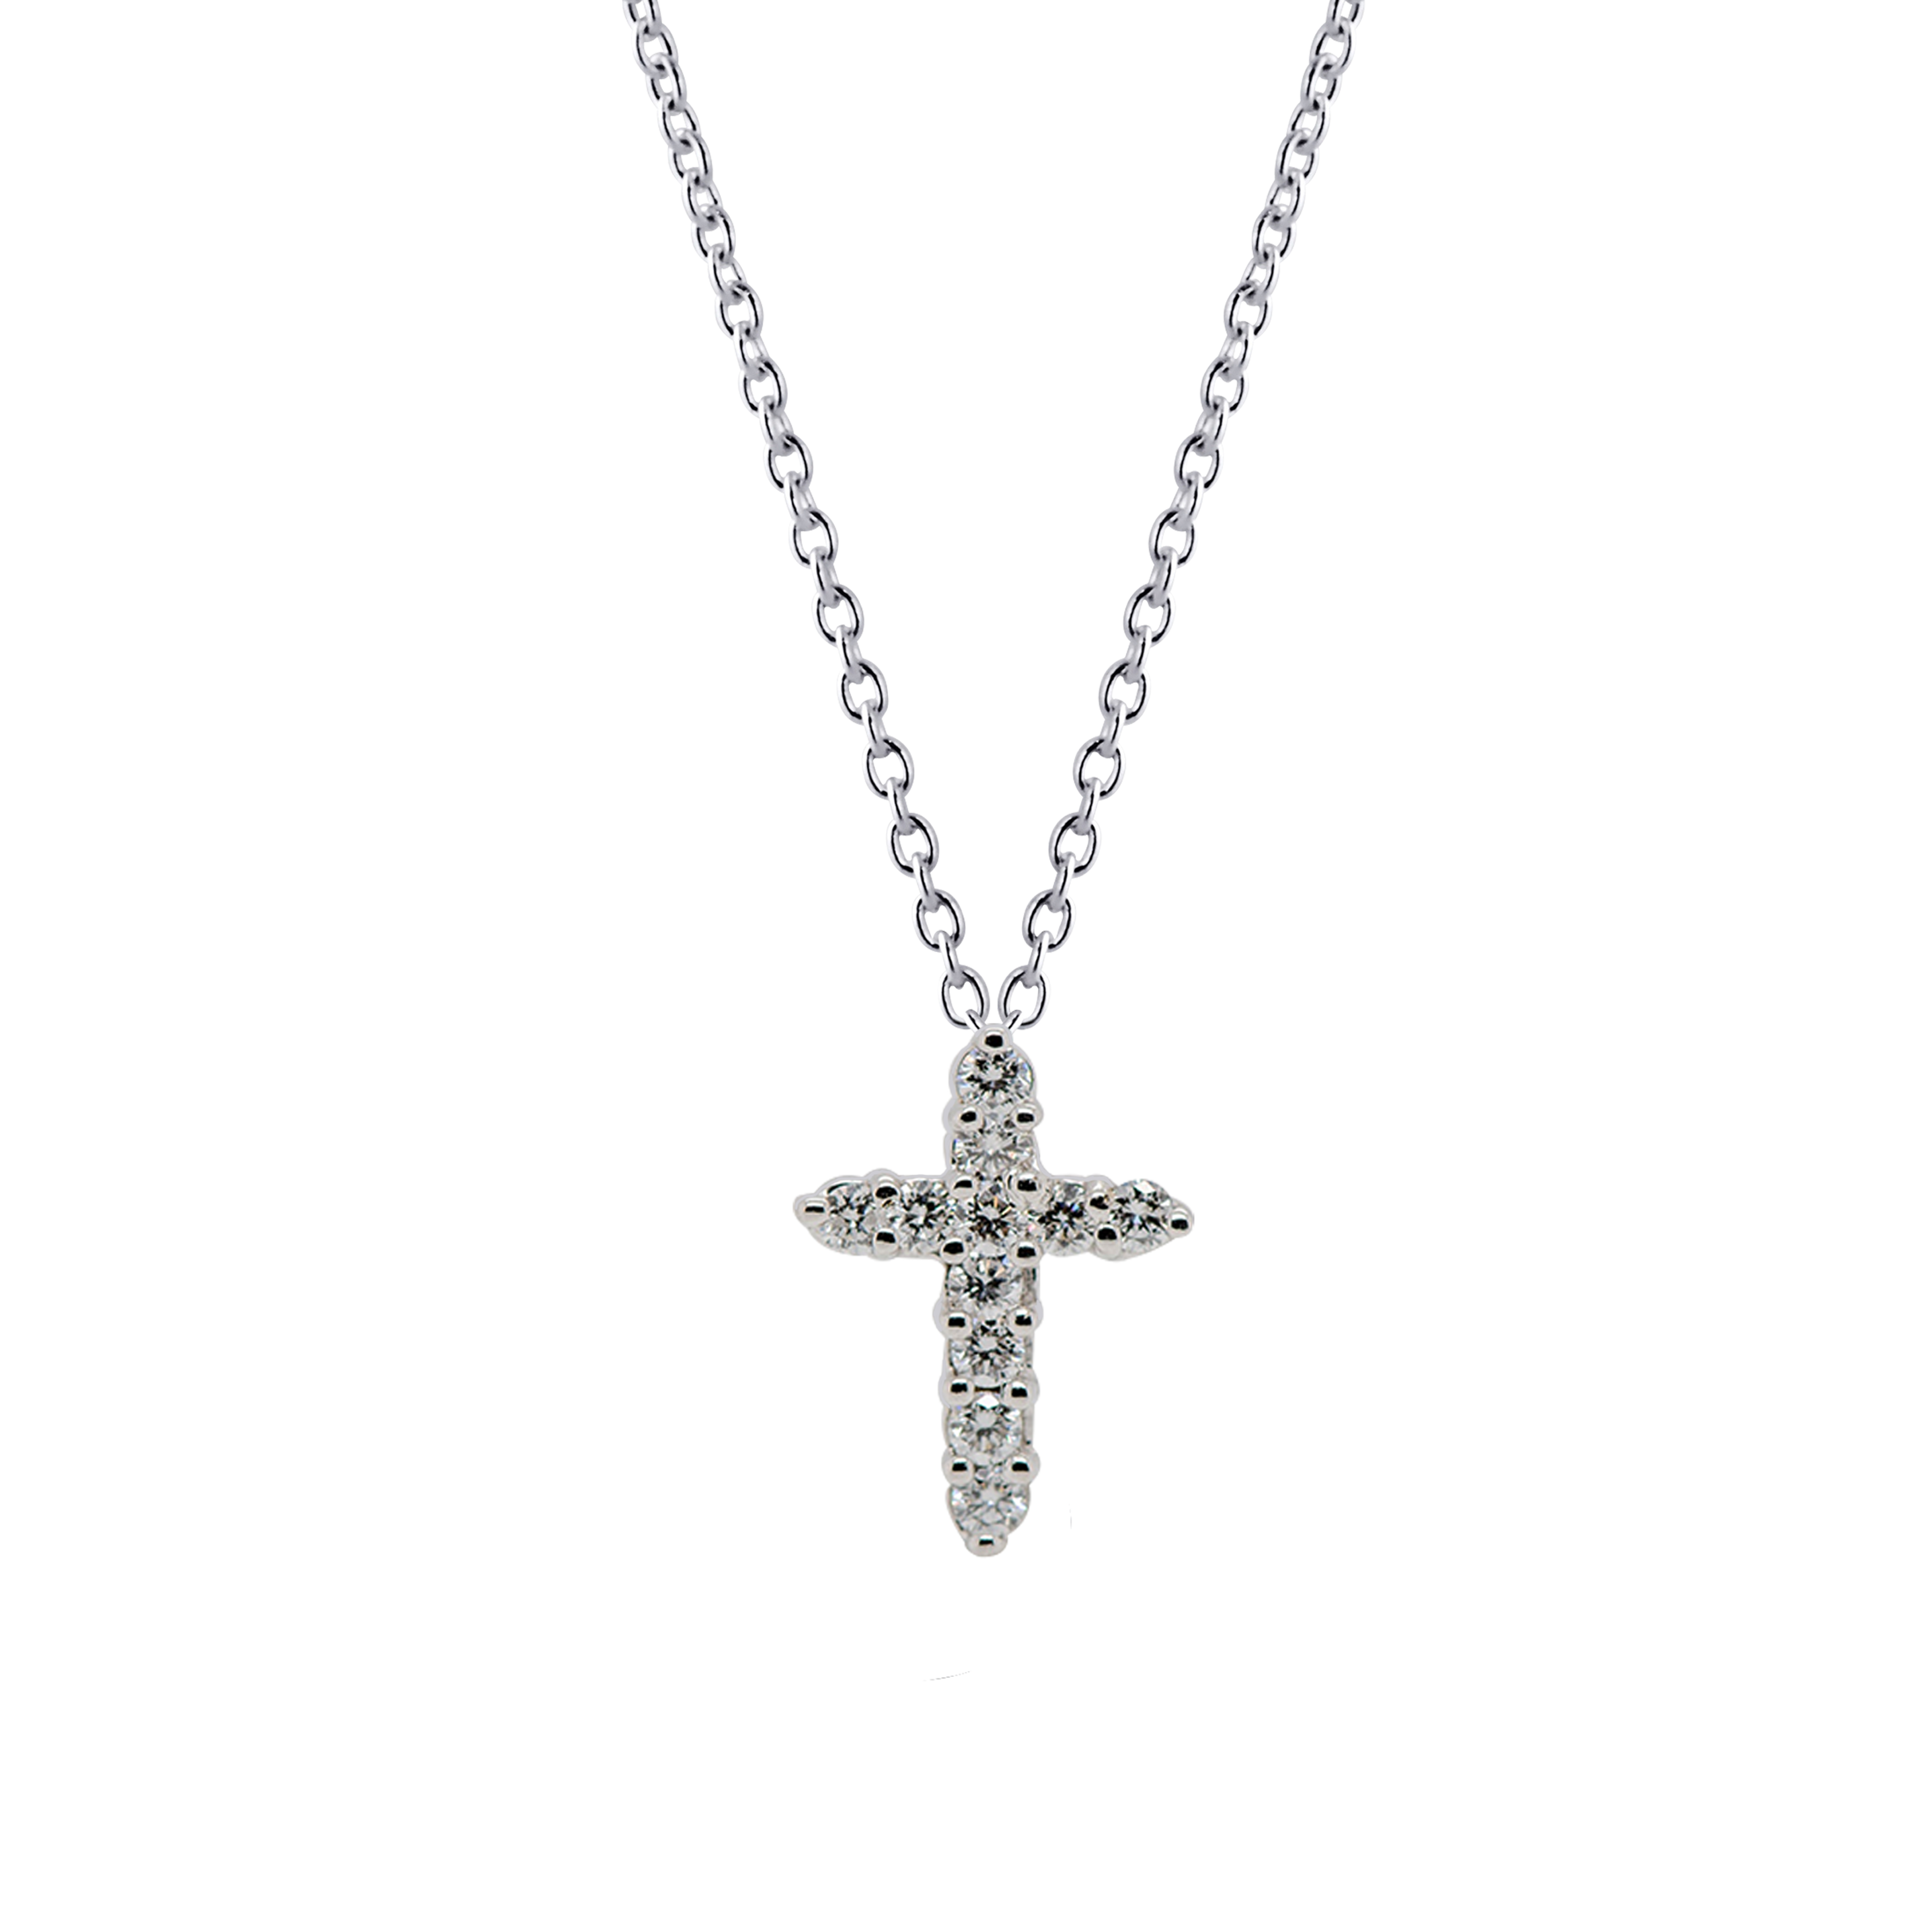 14 Kt White Gold Pendant With Diamonds And 16 Inch Gold Chain Etsy White Gold Pendants White Gold Cross Pendant White Gold Chains